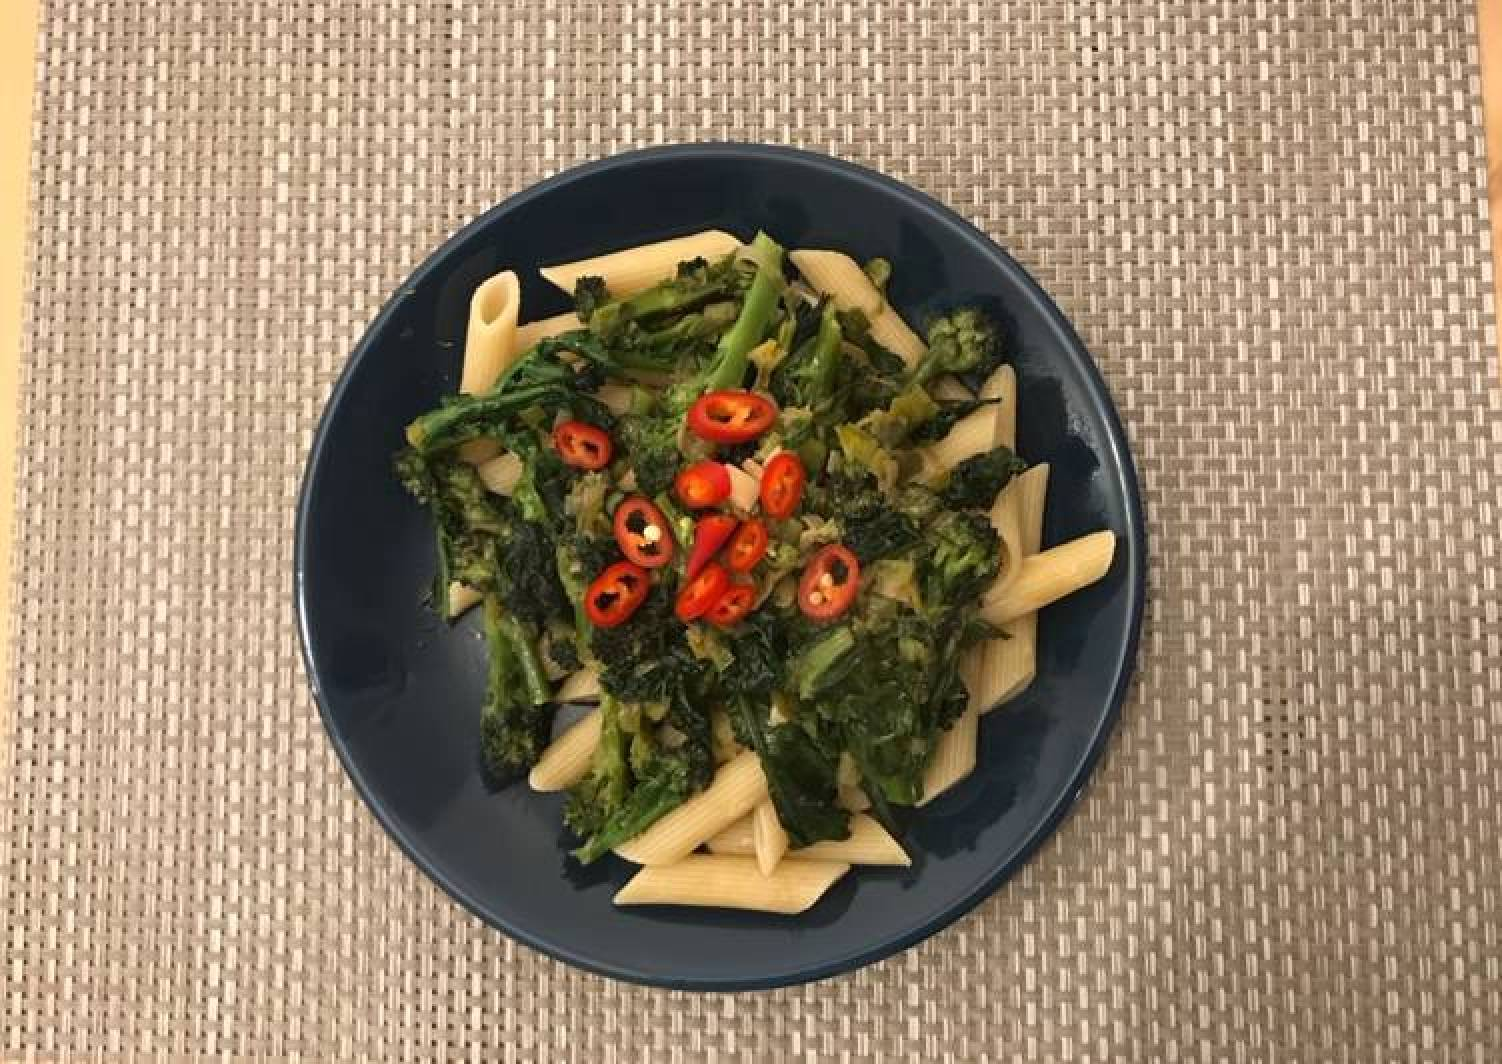 Recipe Of Gordon Ramsay Purple Broccoli And Kale Pasta The Cooking Guide